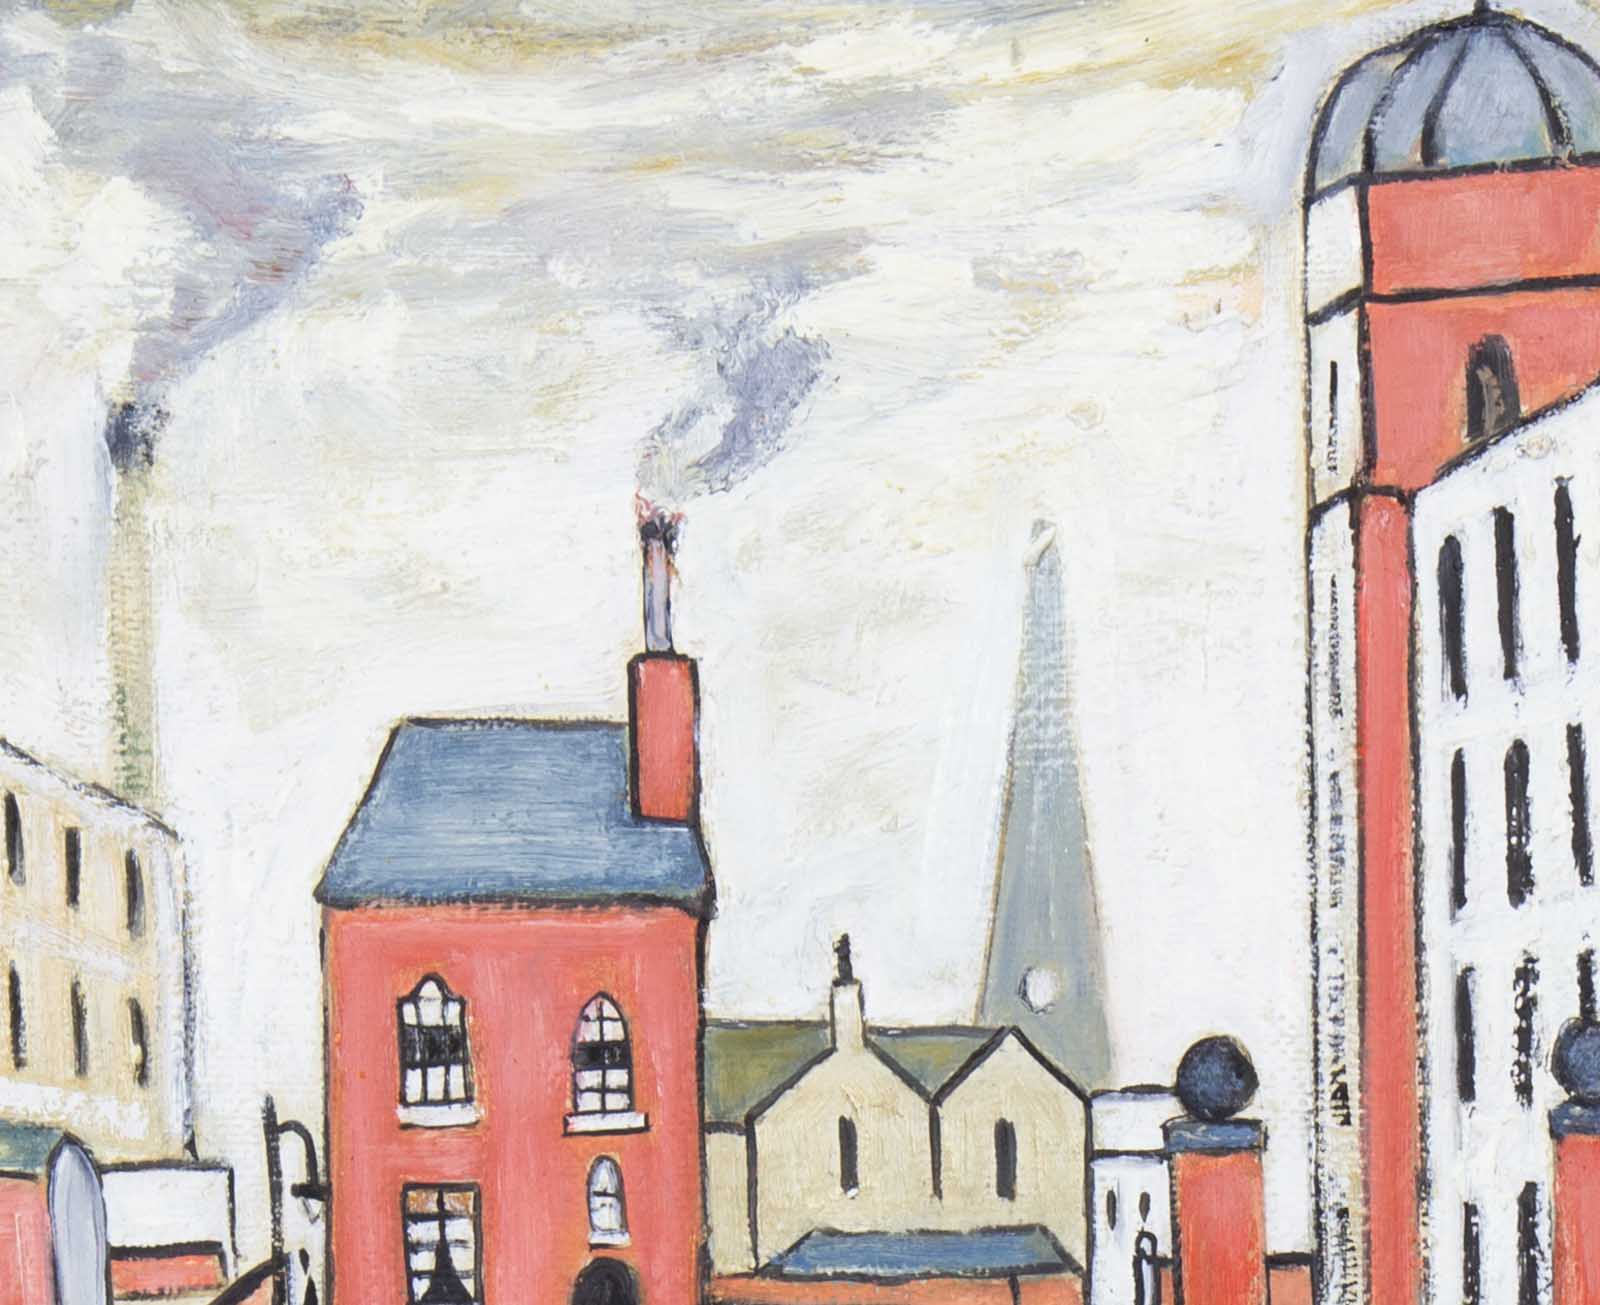 The Rush Hour after L.S.Lowry